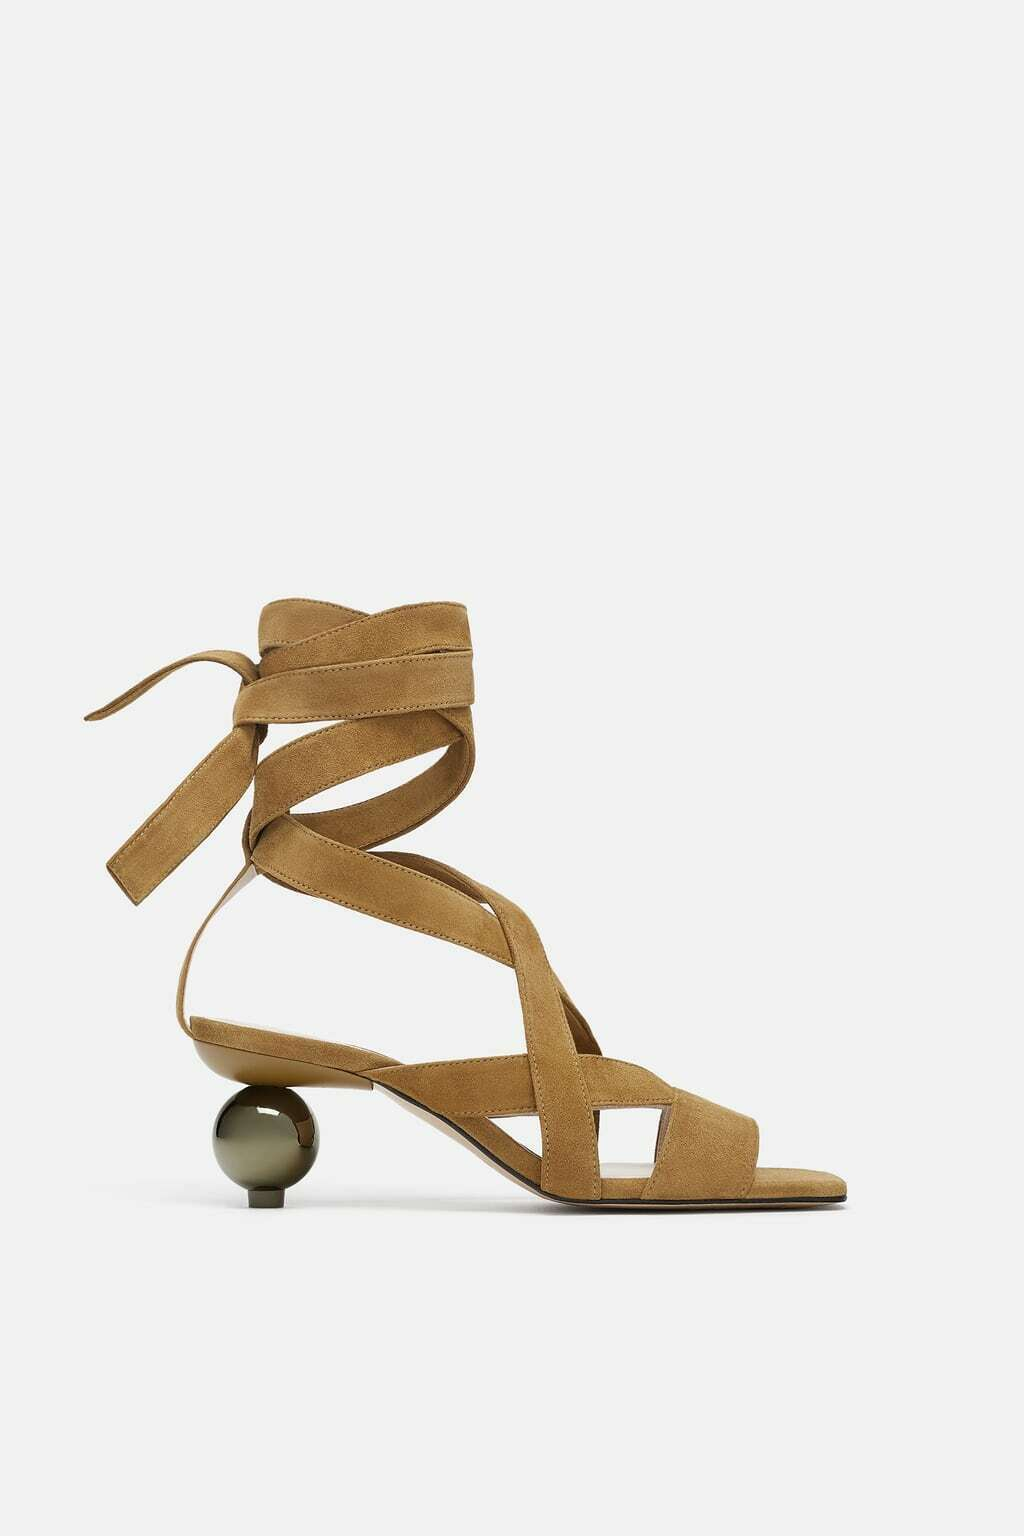 ZARA ROUND HEEL SUEDE REAL LEATHER SANDALS SIZE EU 38 US 7.5 UK 5